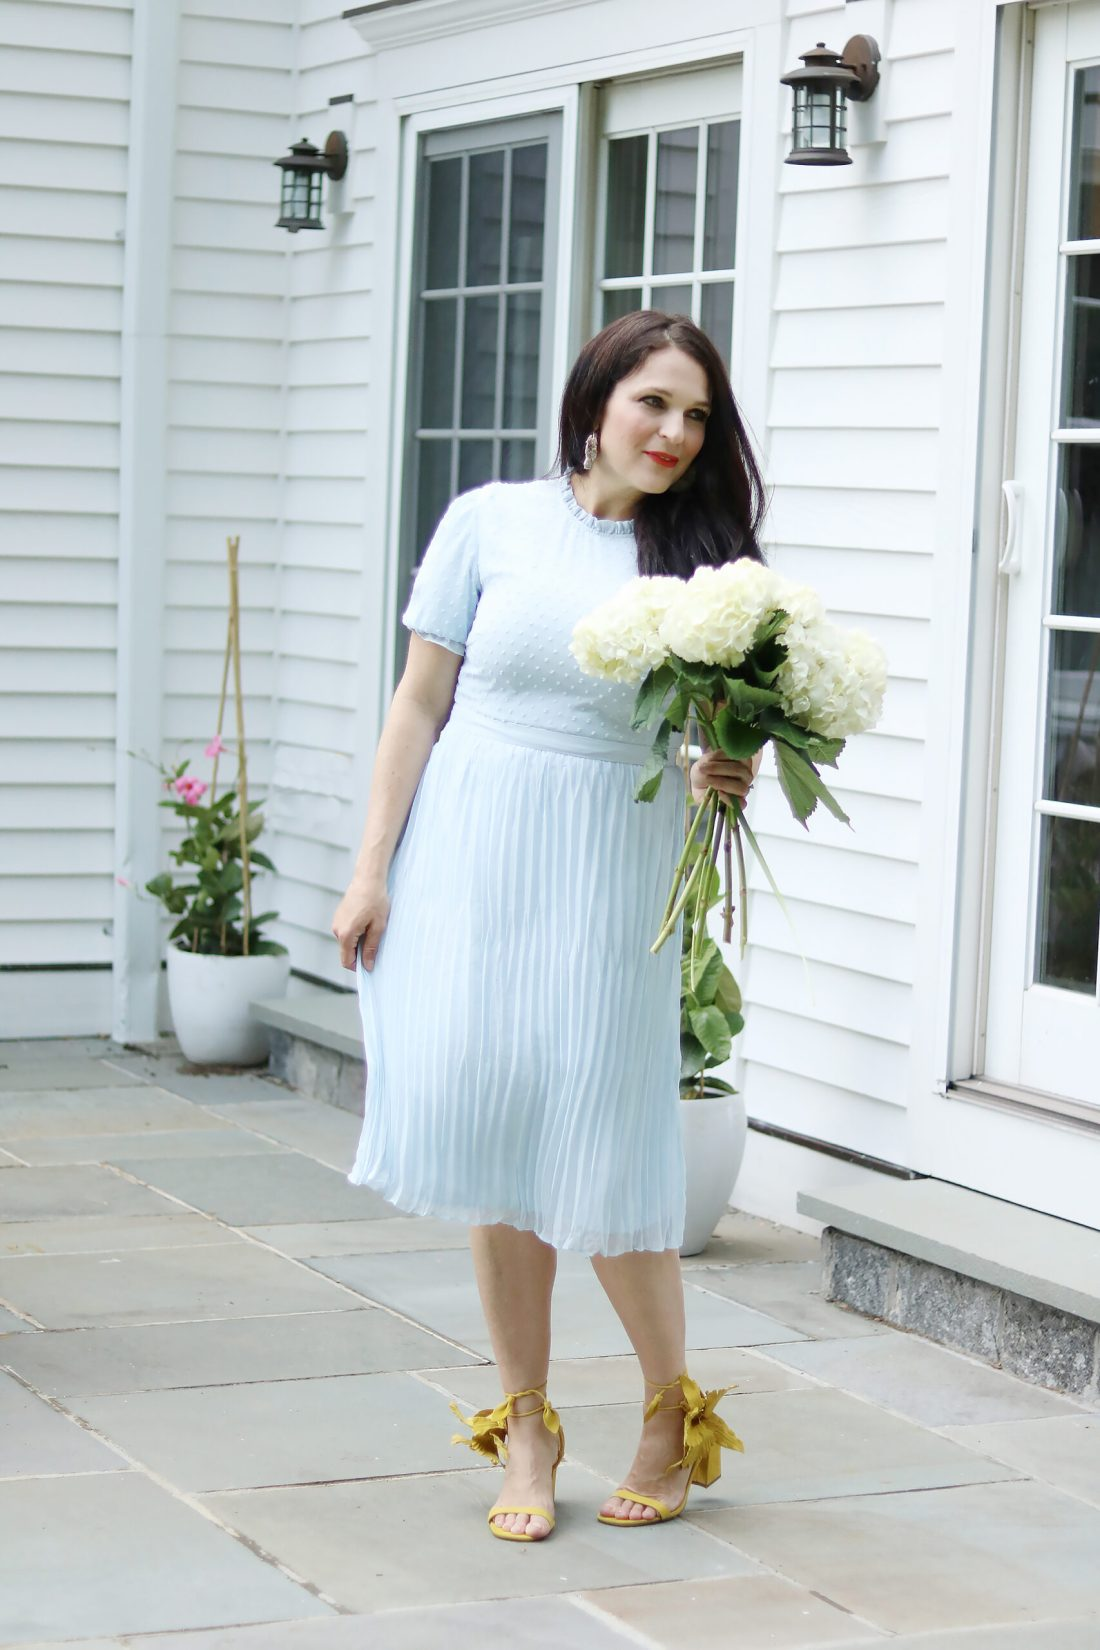 Easter Dresses This Season that are a little bit of lace, floral and pastel colors || Darling Darleen Top CT Lifestyle blogger #darlingdarleen #easterdresses